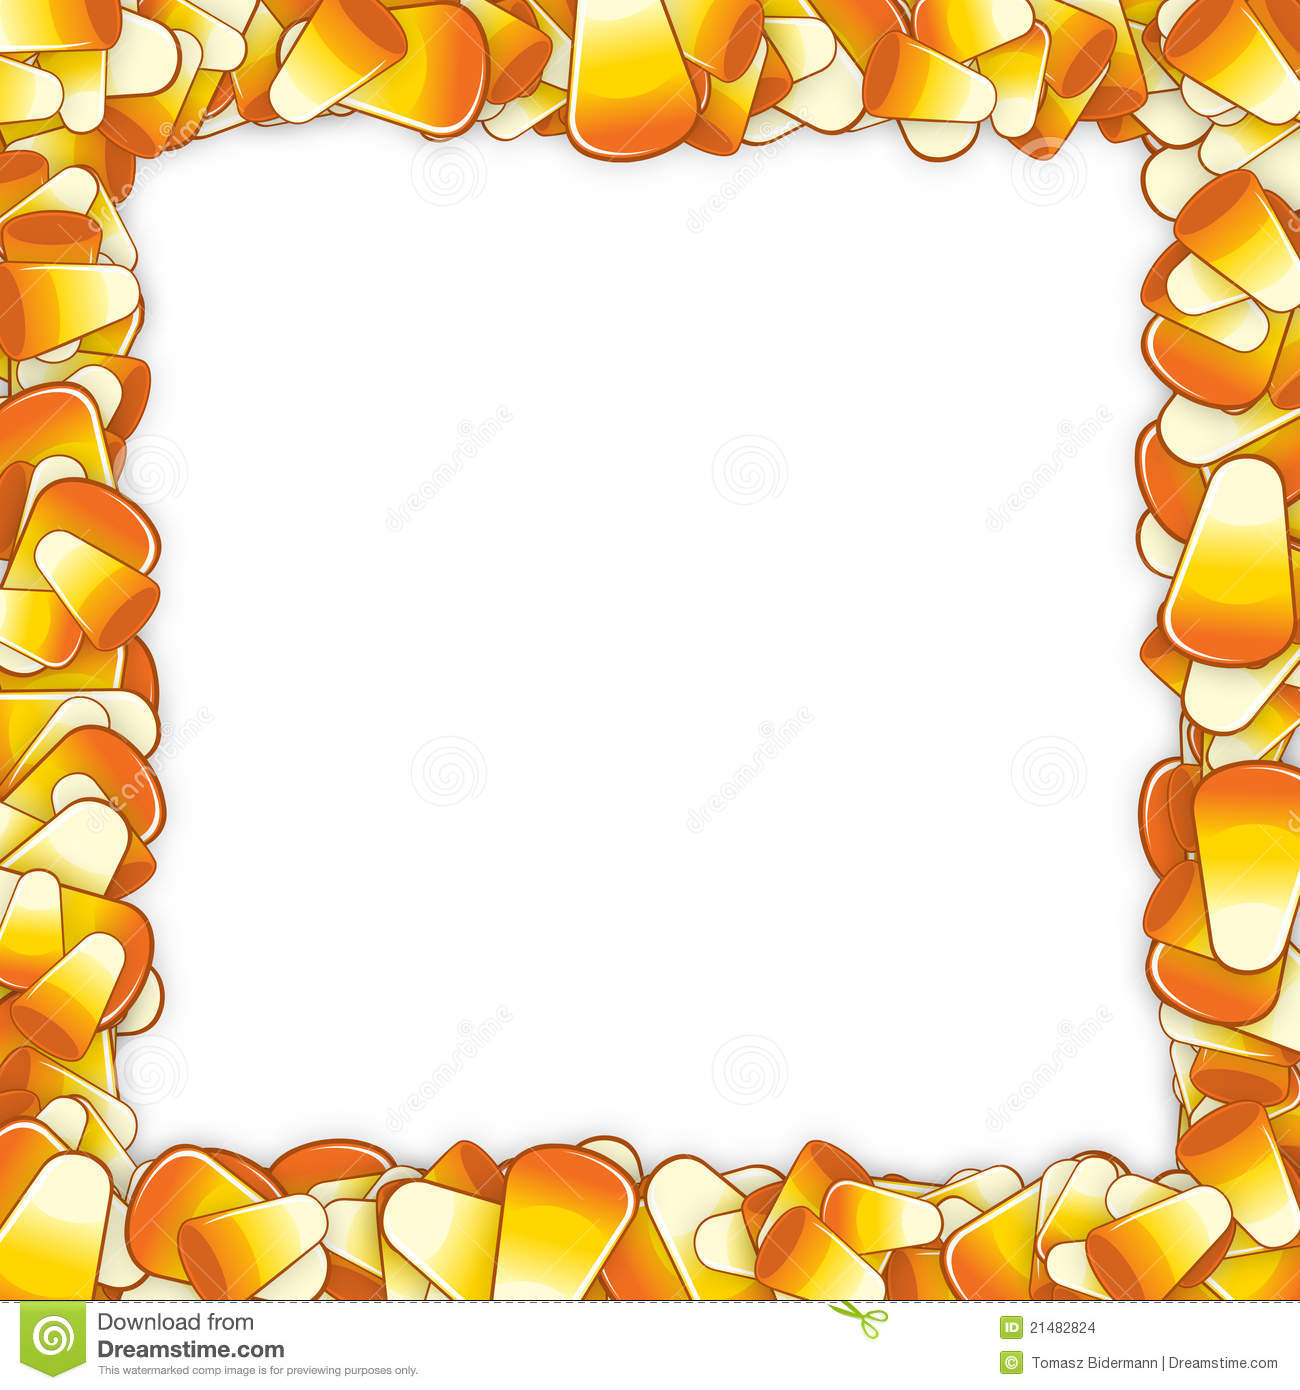 Candy corn frame stock illustration. Illustration of background - 21482824